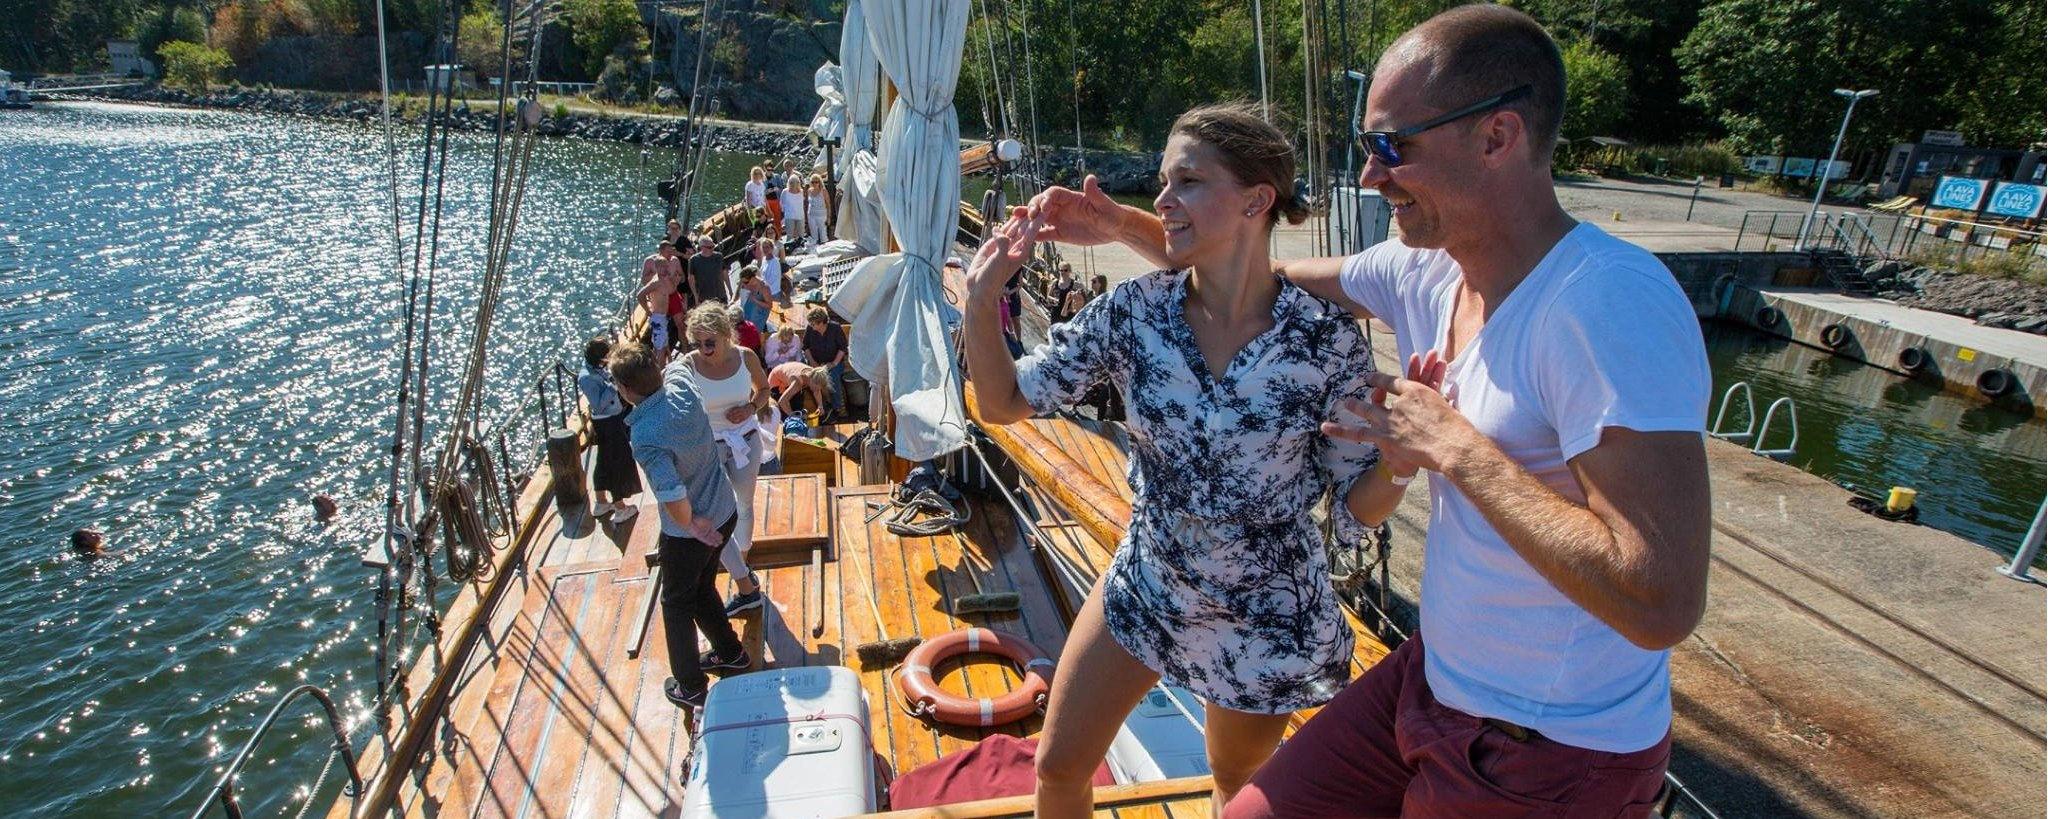 Link to event Sail&Salsa 2019